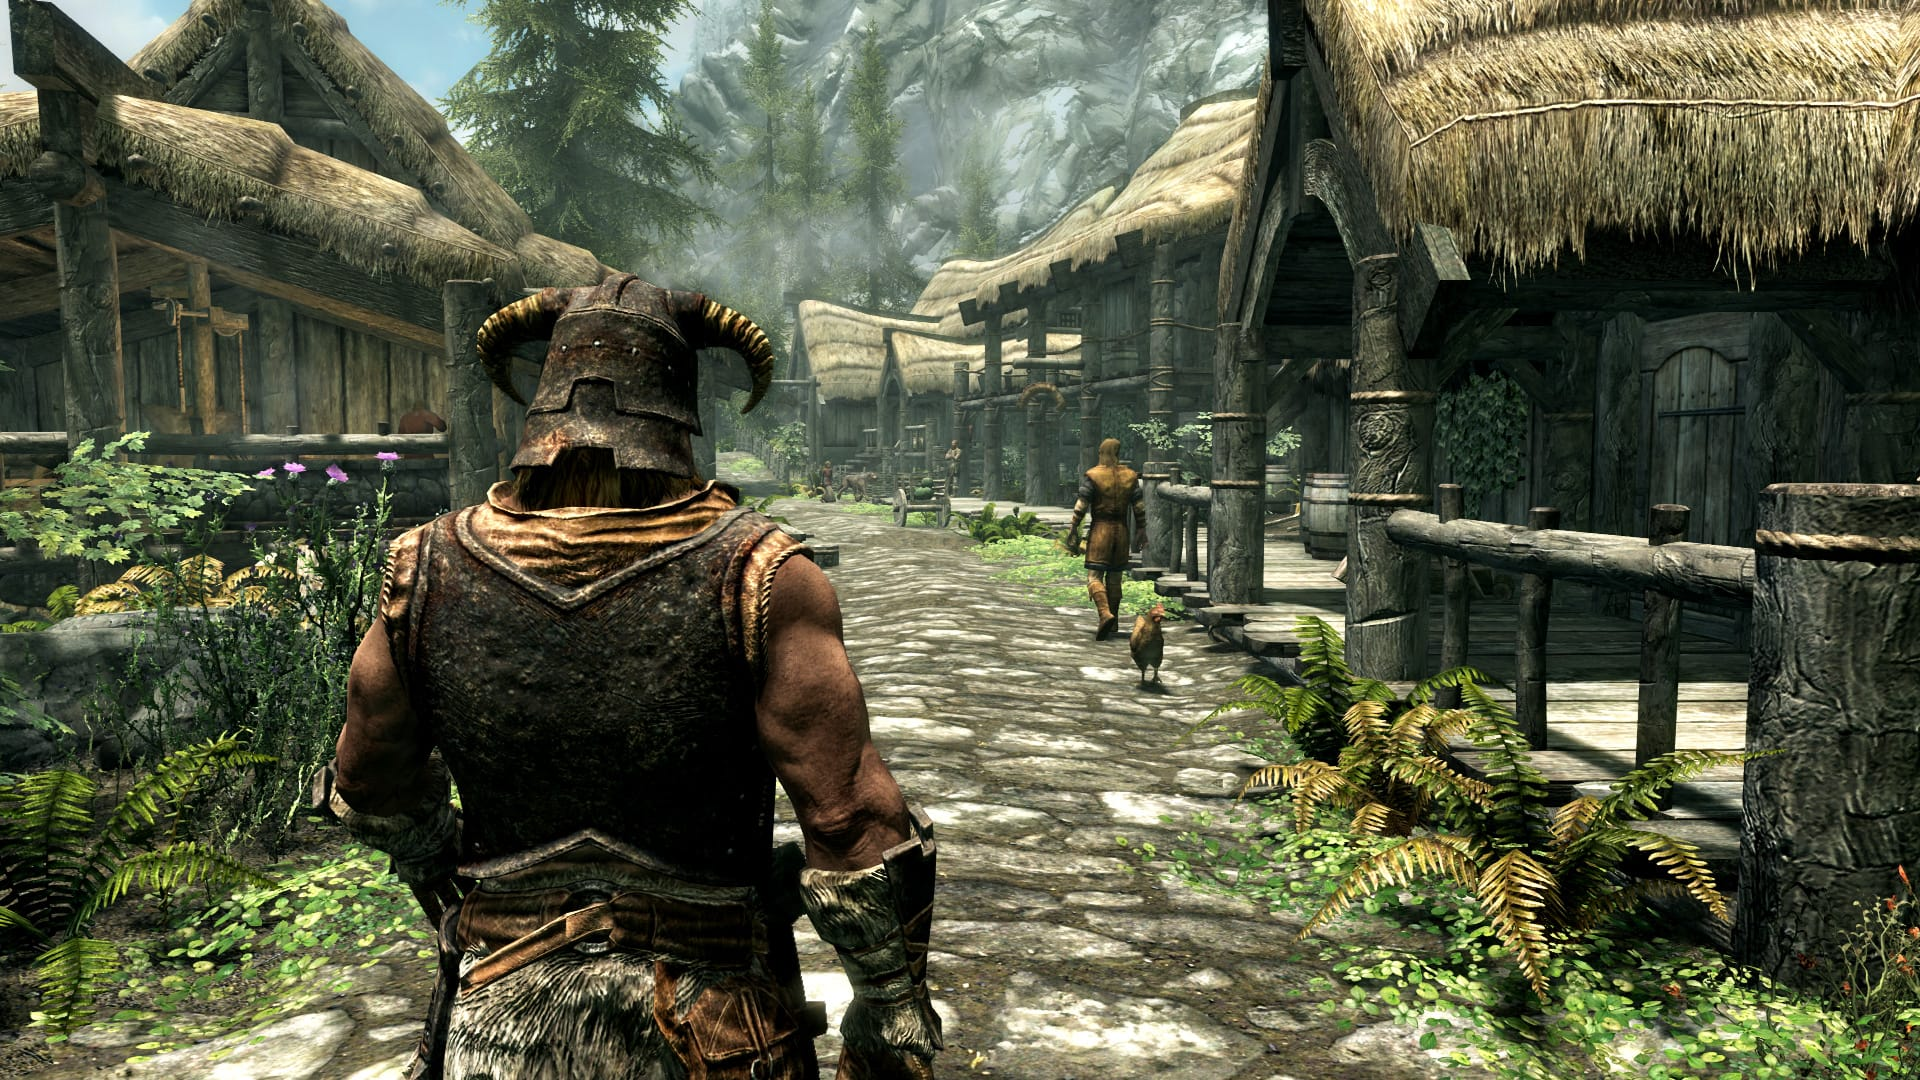 Best Skyrim Mods 2020.Dress Up Games Come To Tamriel Thanks To This Skyrim Mod